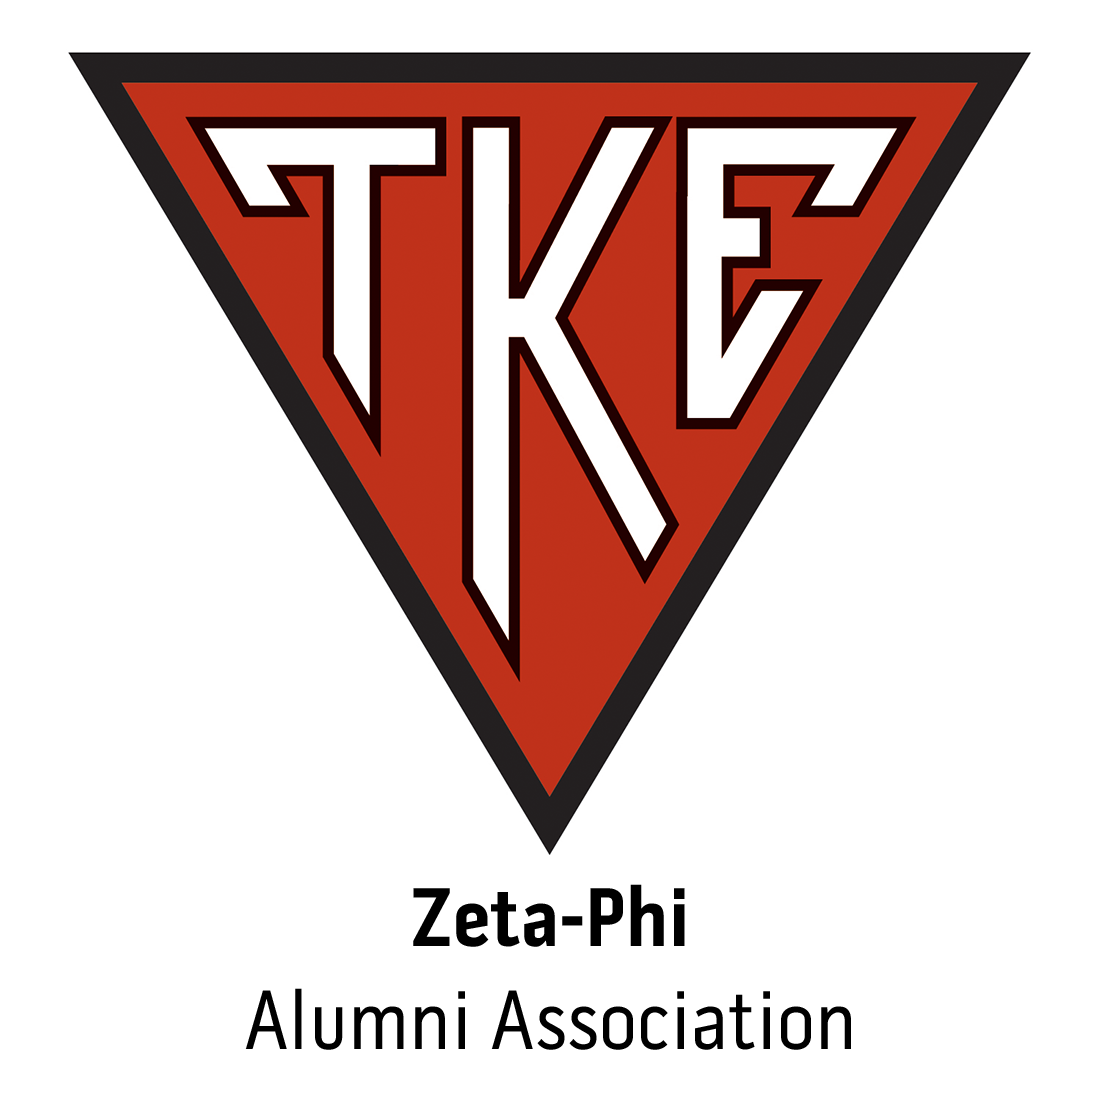 Zeta-Phi Alumni Association at Rollins College